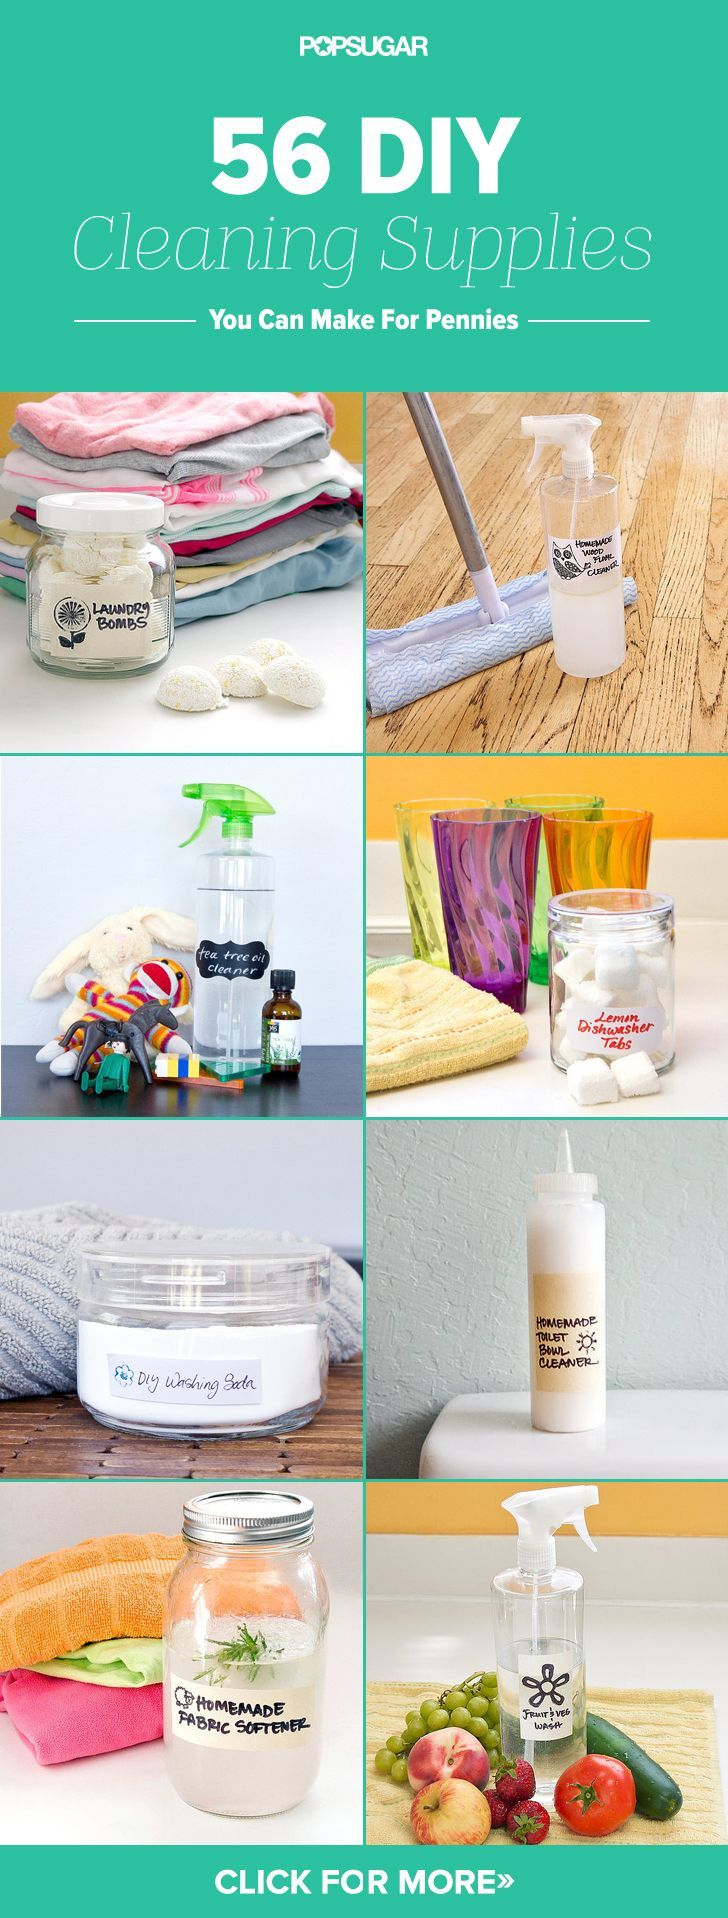 Make These 56 DIY Cleaning Products For Pennies Cleaning tips, cleaning schedule, green cleaning #green